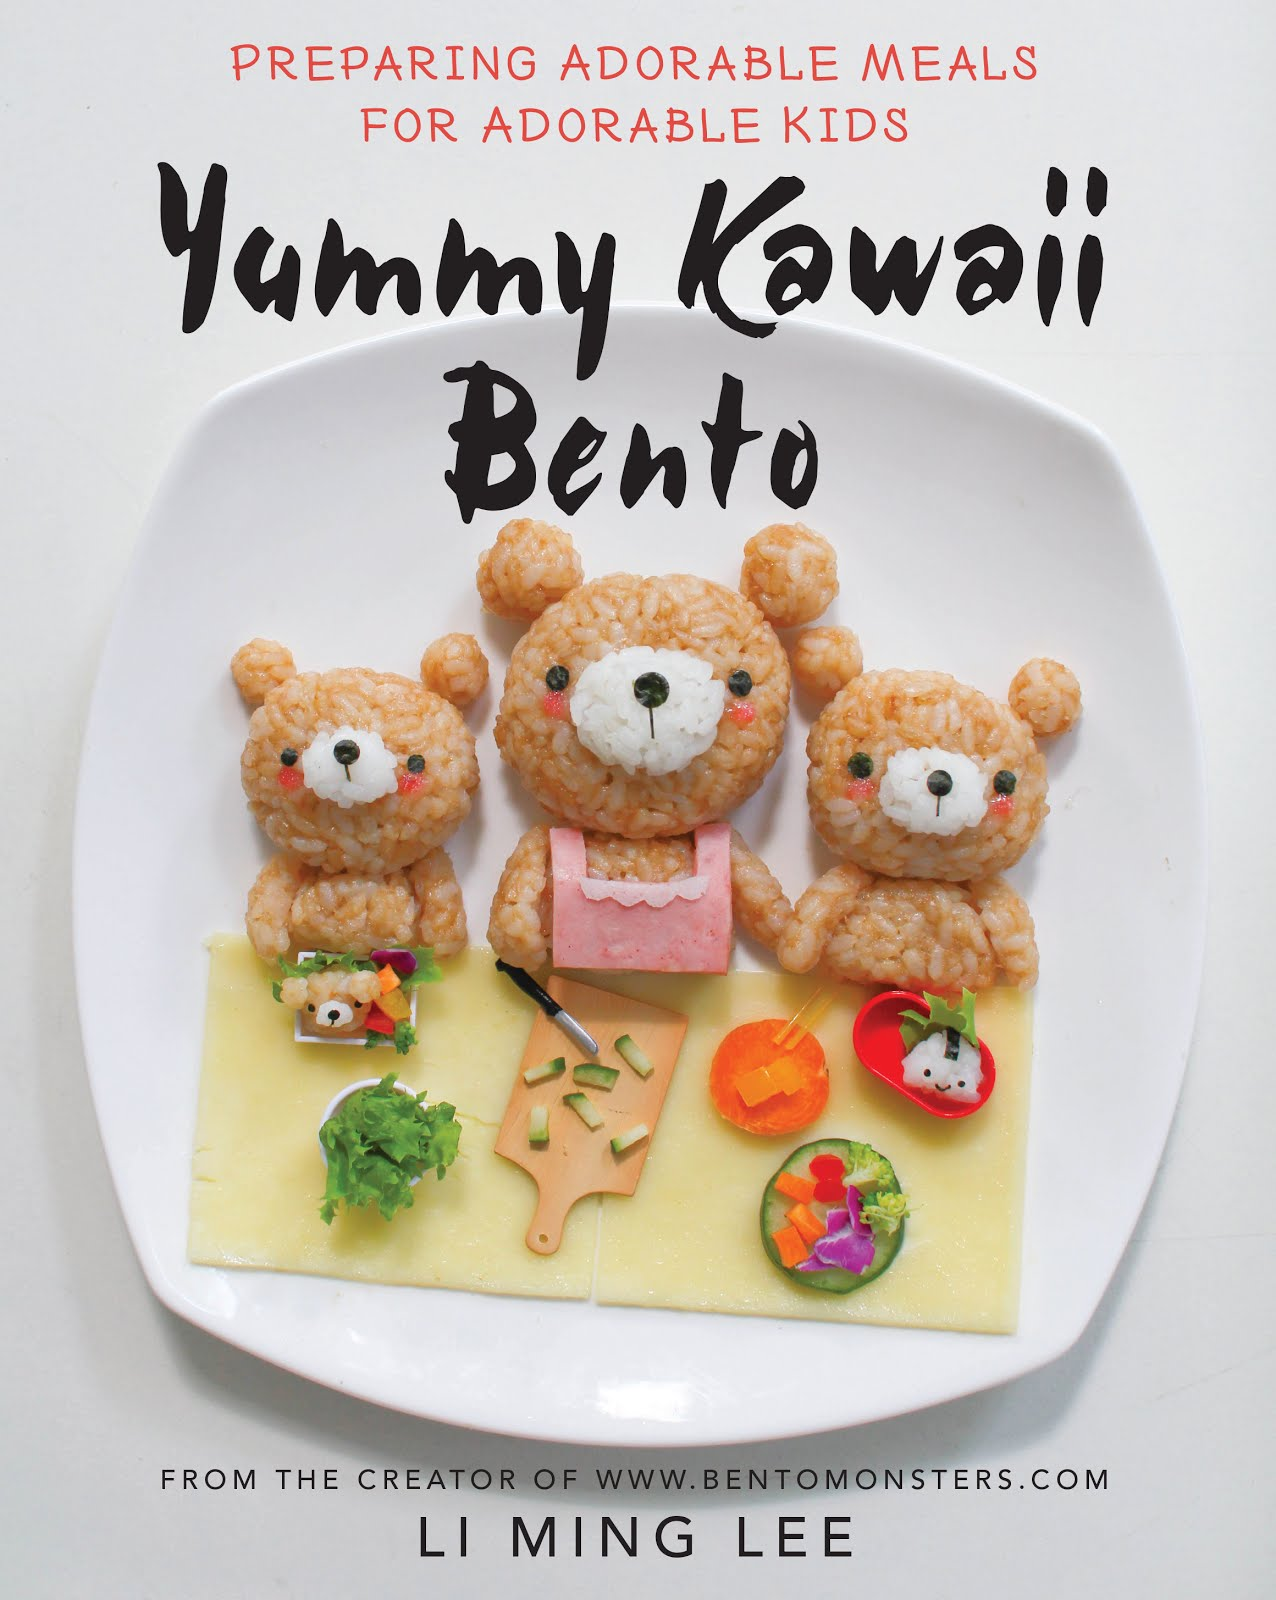 Yummy Kawaii Bento Cookbook